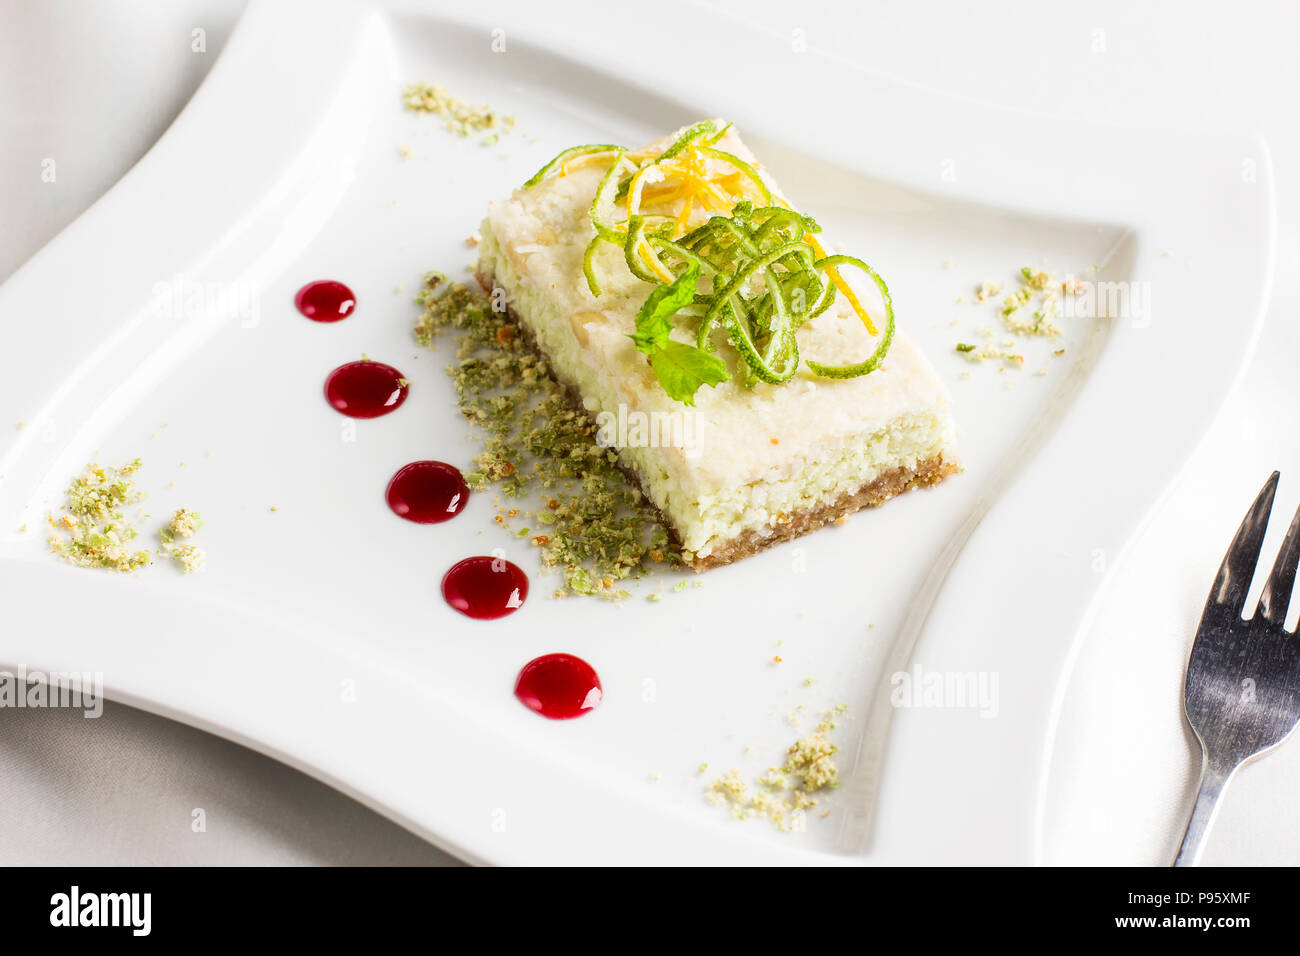 Raw food dessert cake with lemon and lime candied fruits on white plate - Stock Image